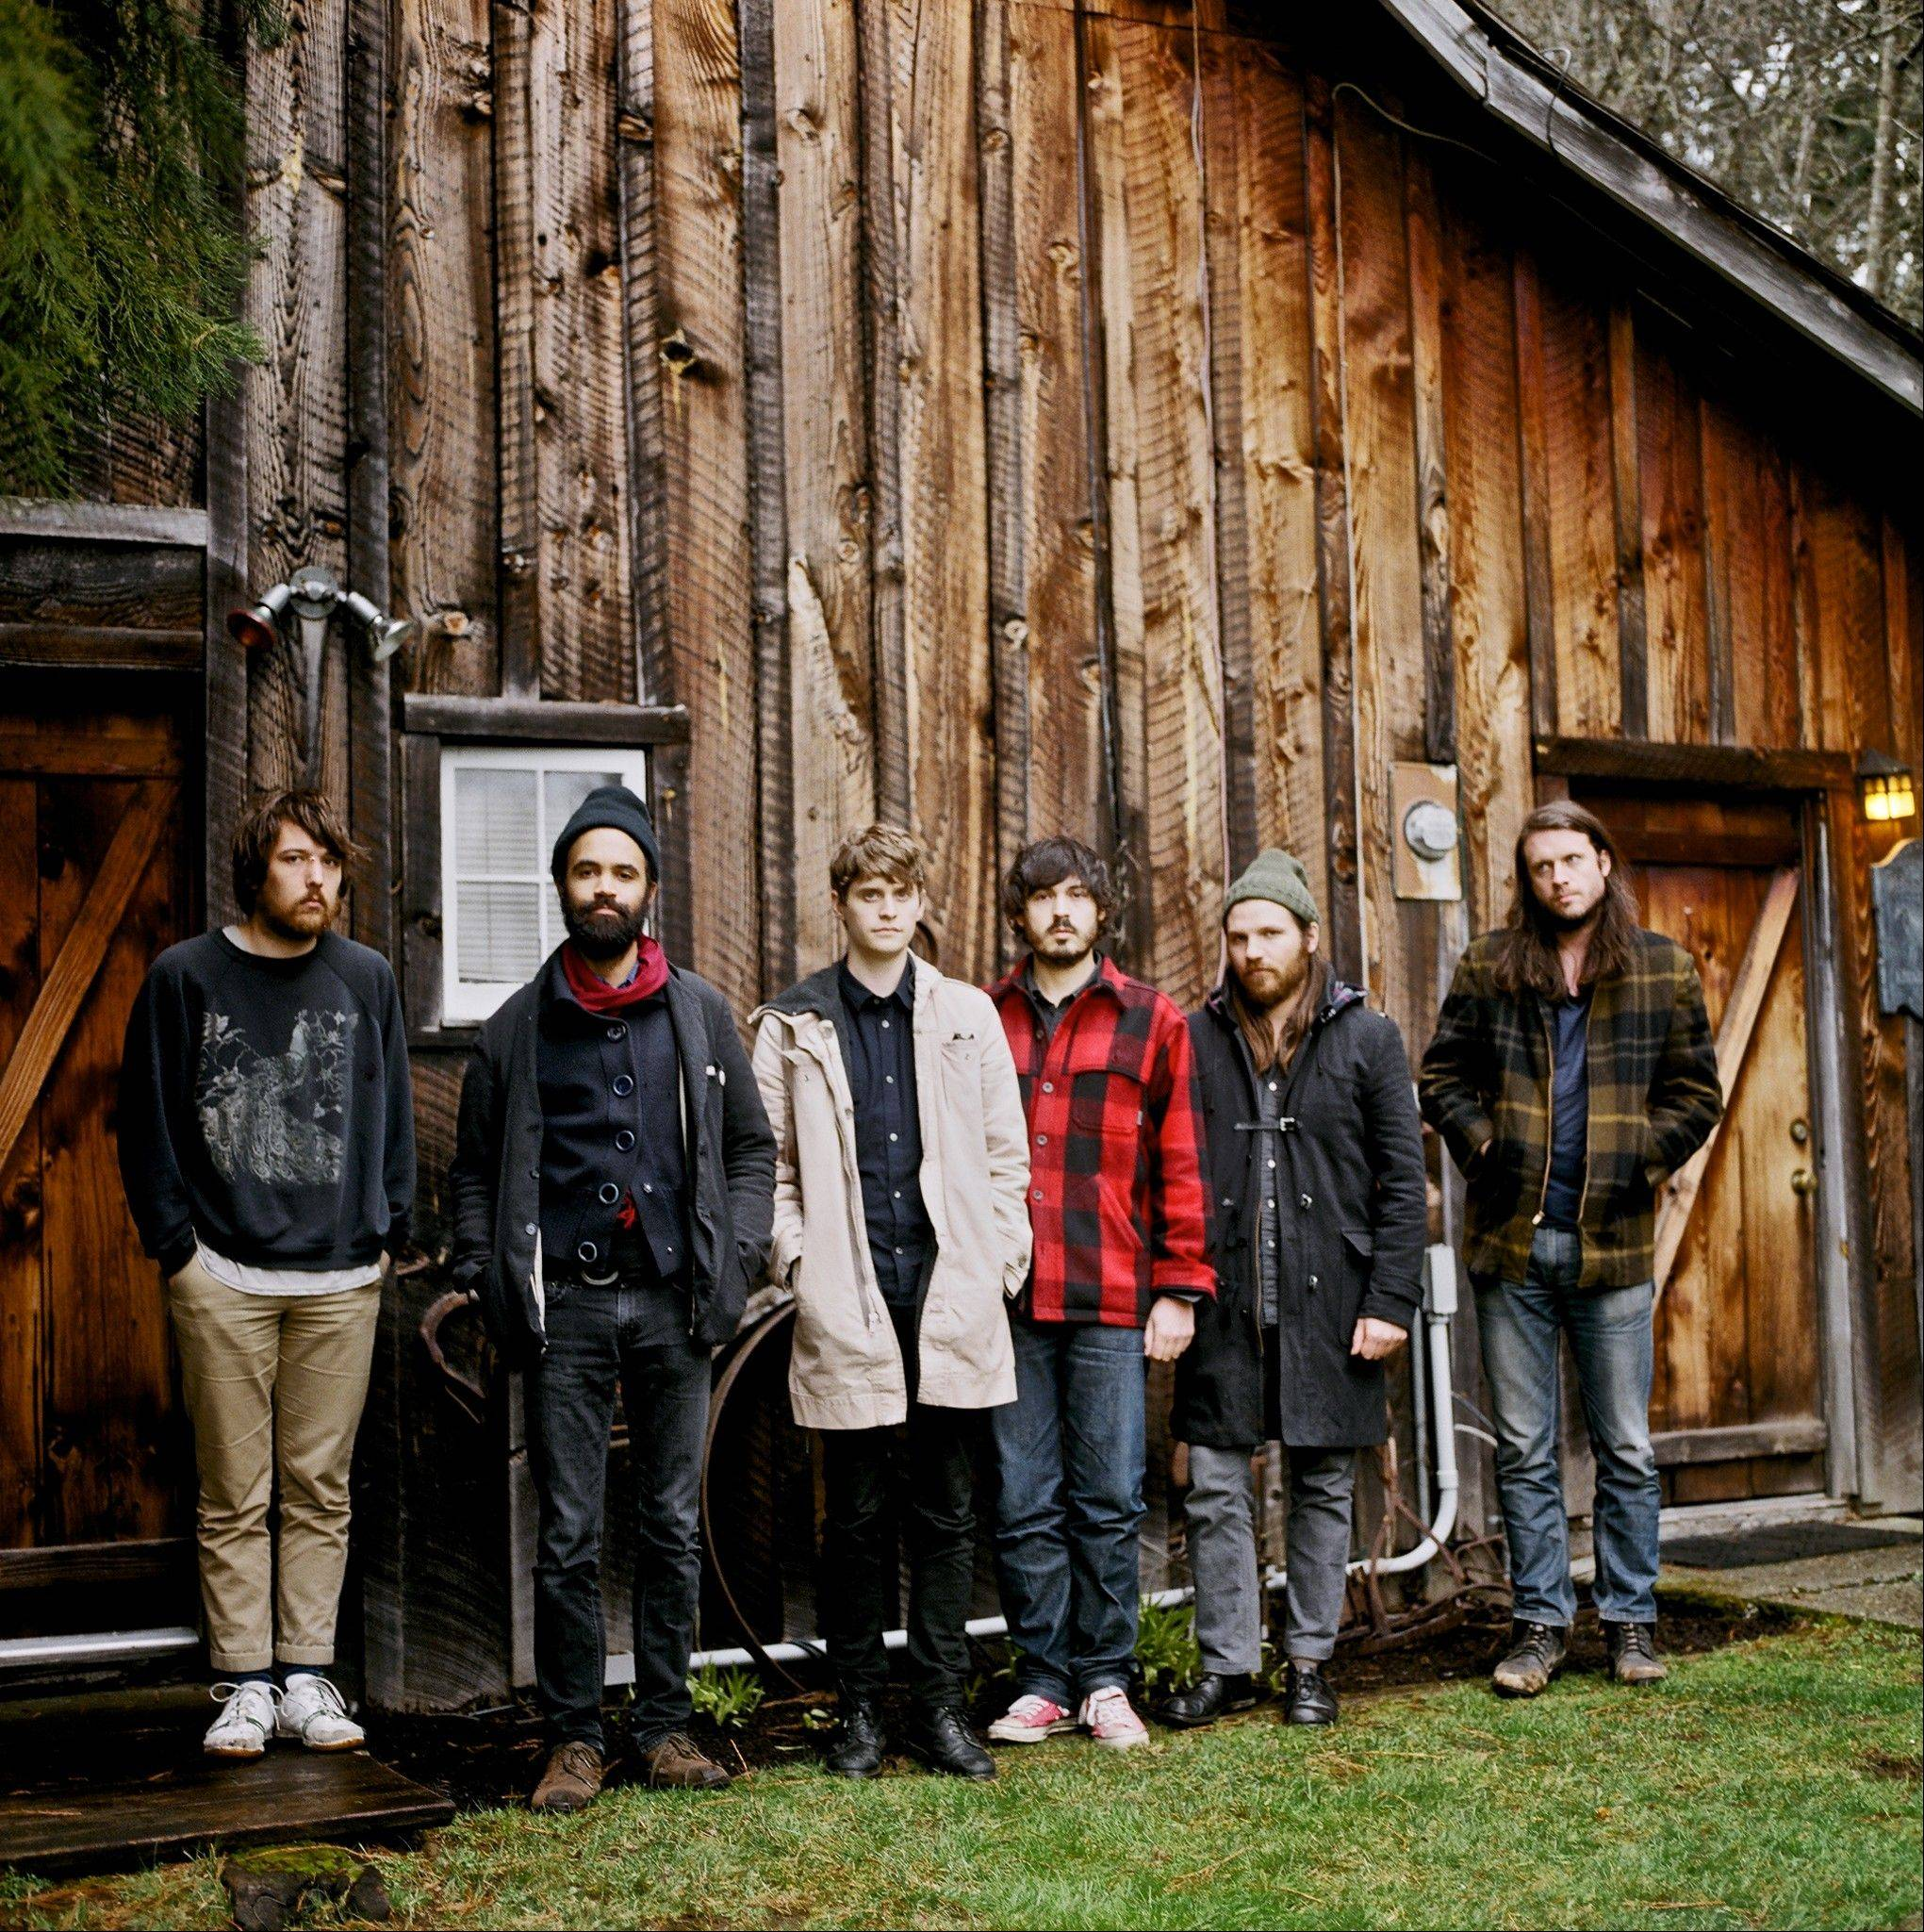 Fleet Foxes, the moody rockers from the Pacific Northwest, will headline the Pitchfork Music Festival this weekend.